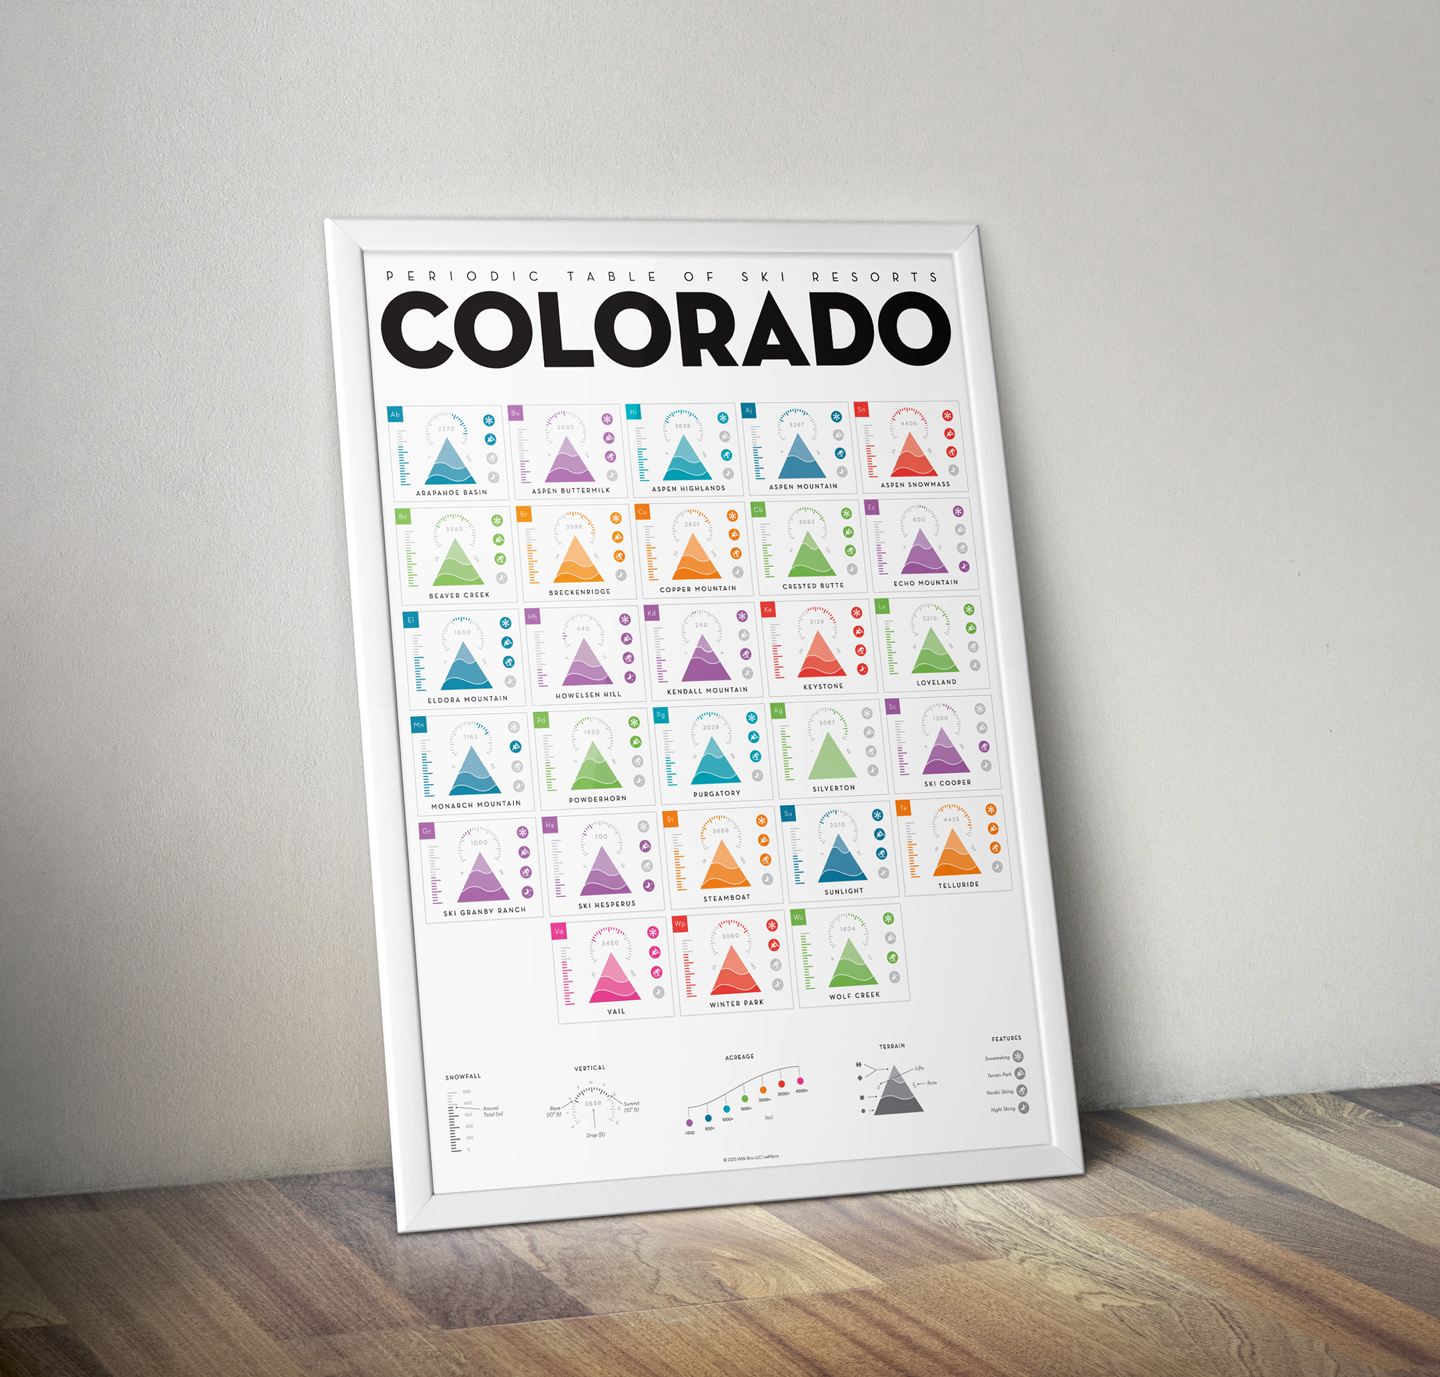 Periodic table of colorado resorts